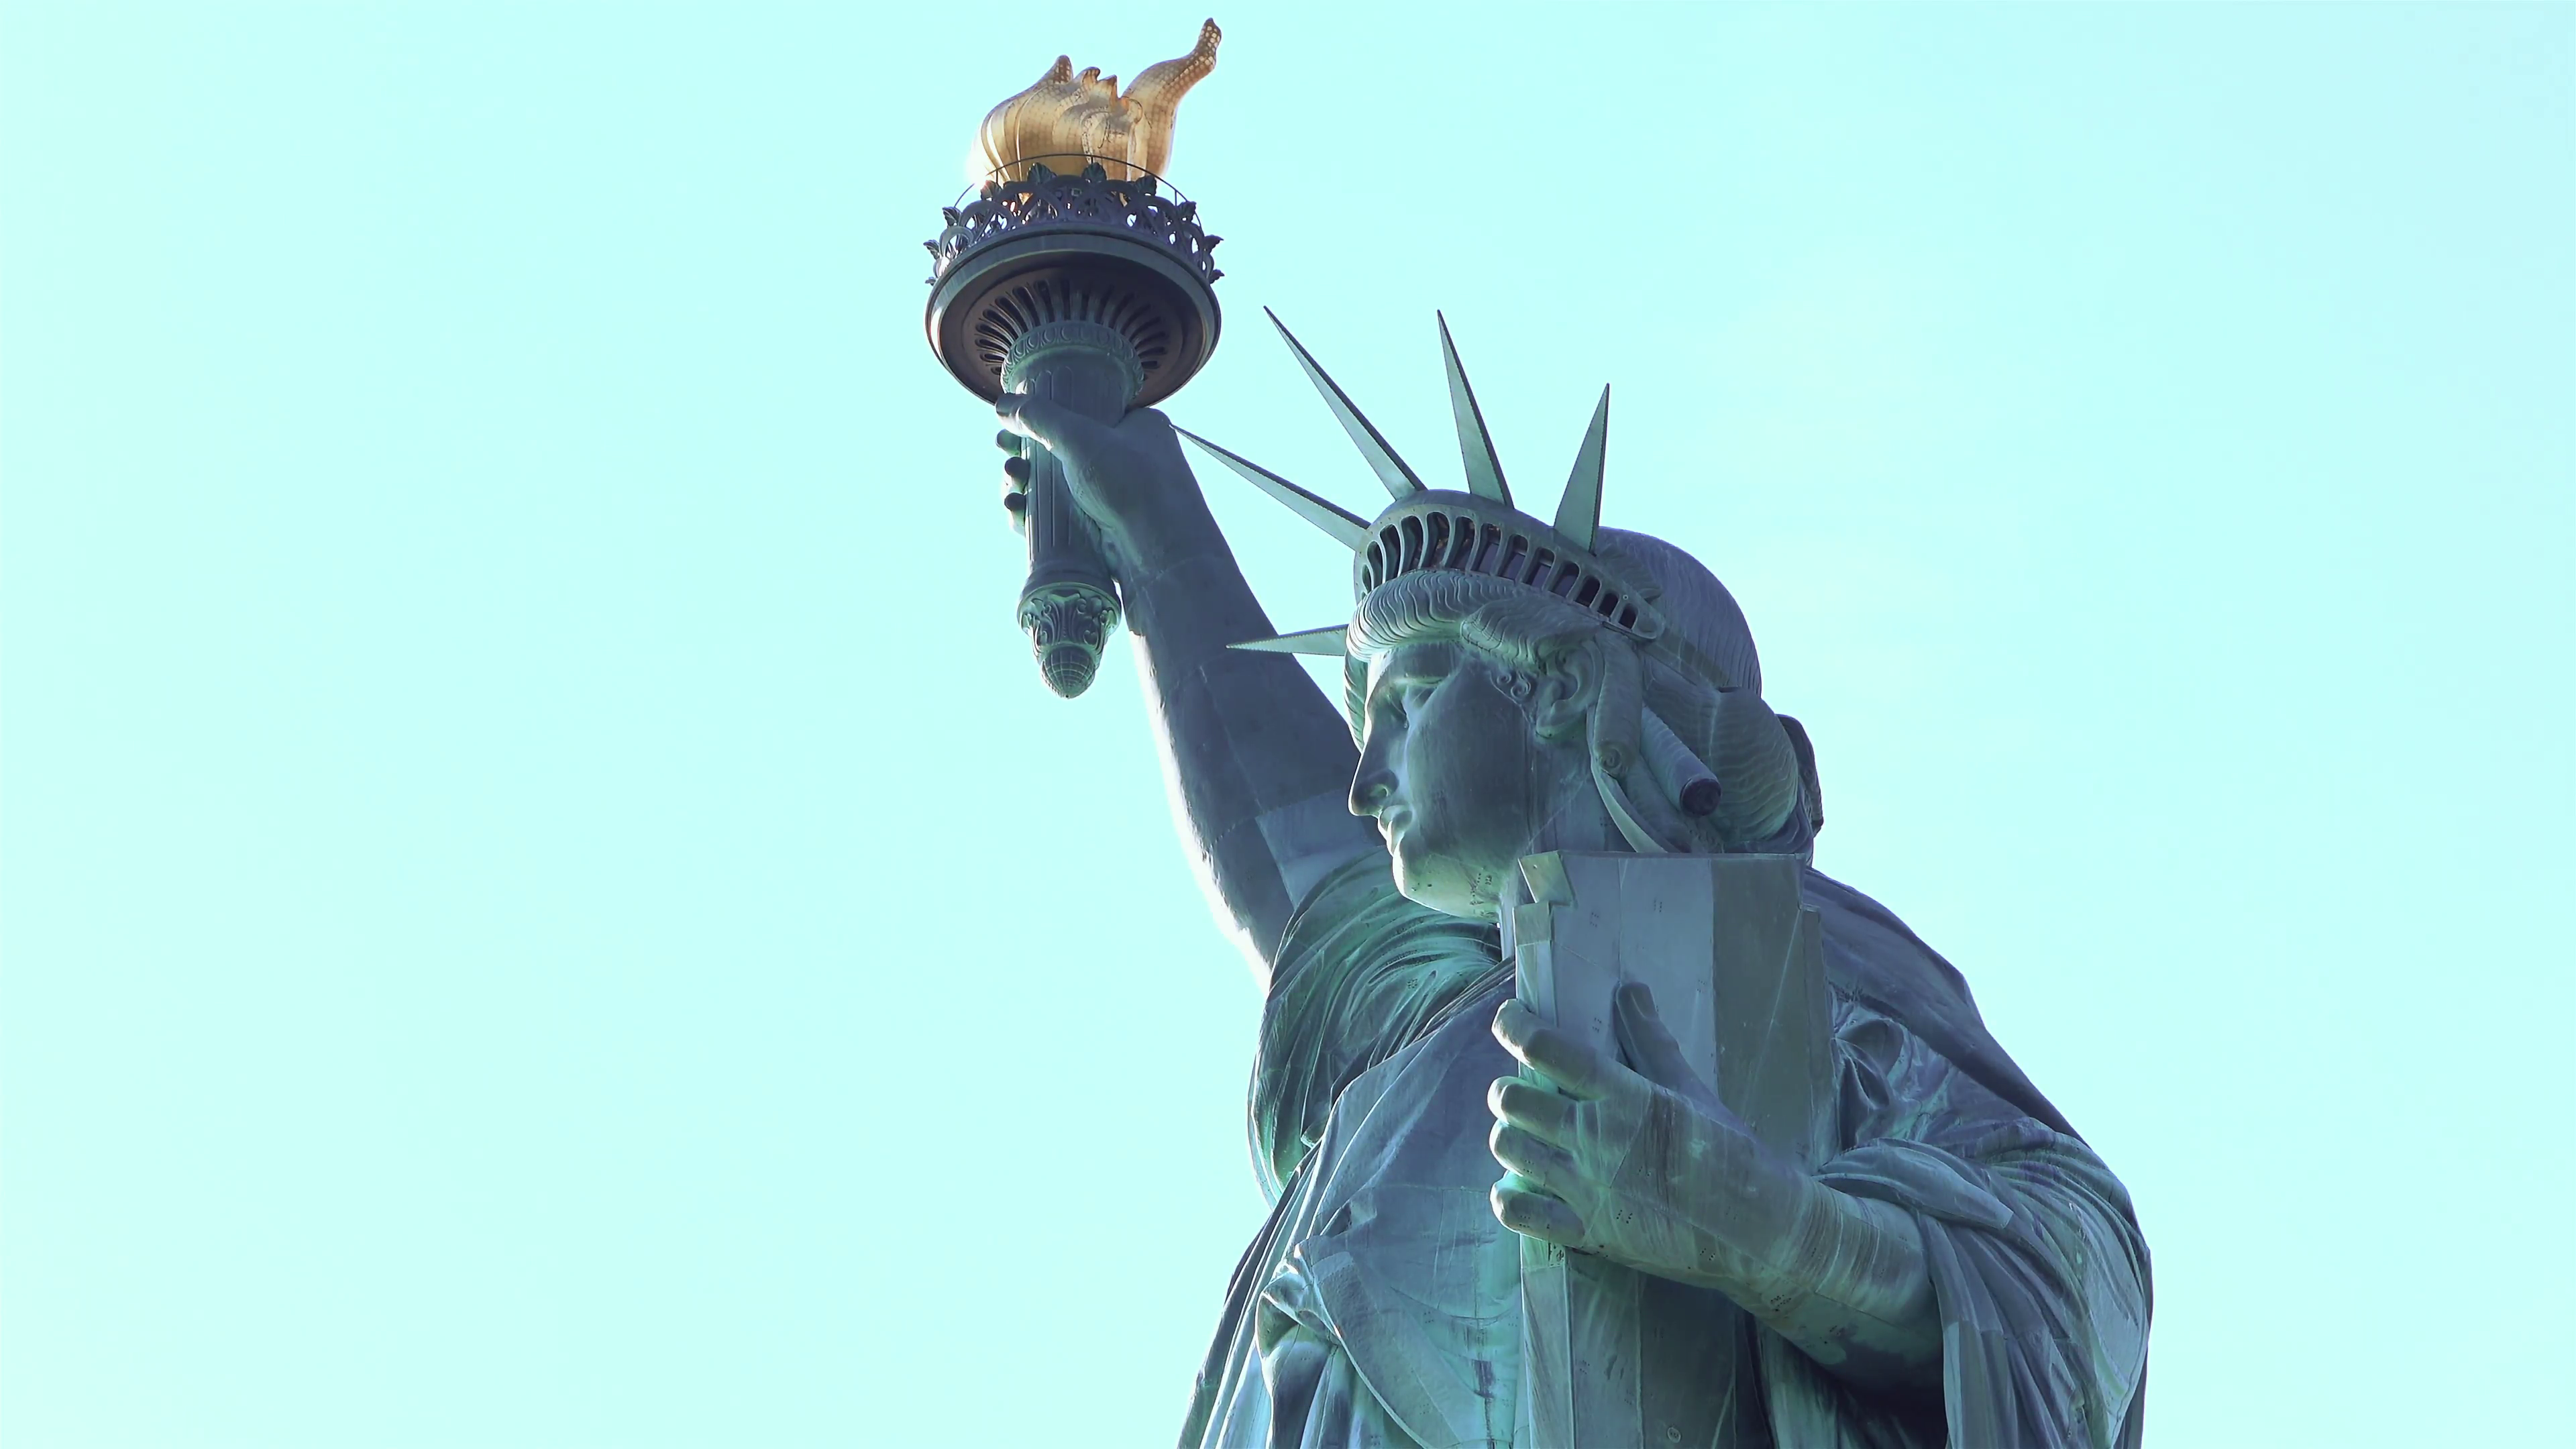 Statue of Liberty close up on face and torch 4k Stock Video Footage ...